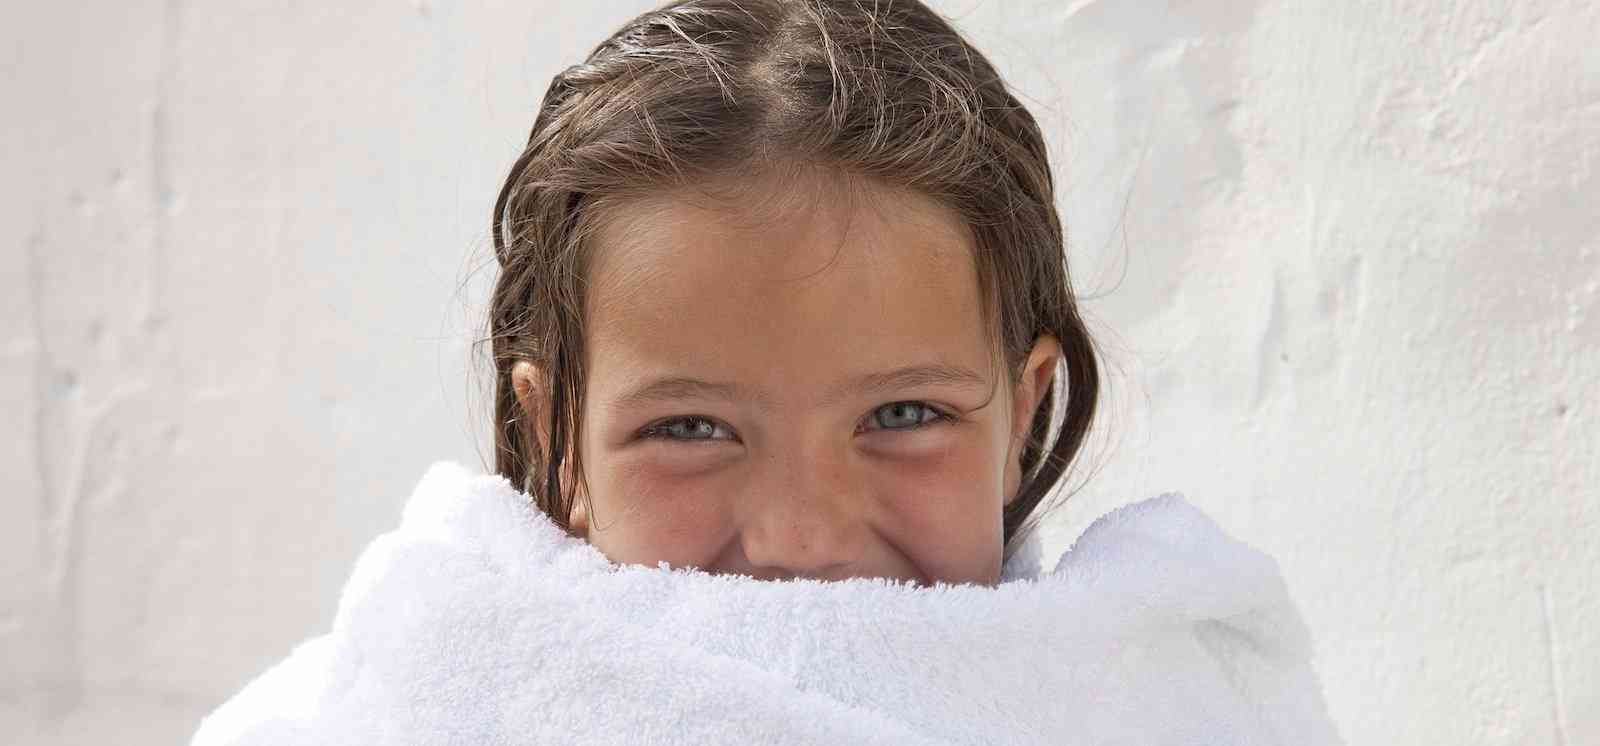 Girl_Wrapped_In_Towel